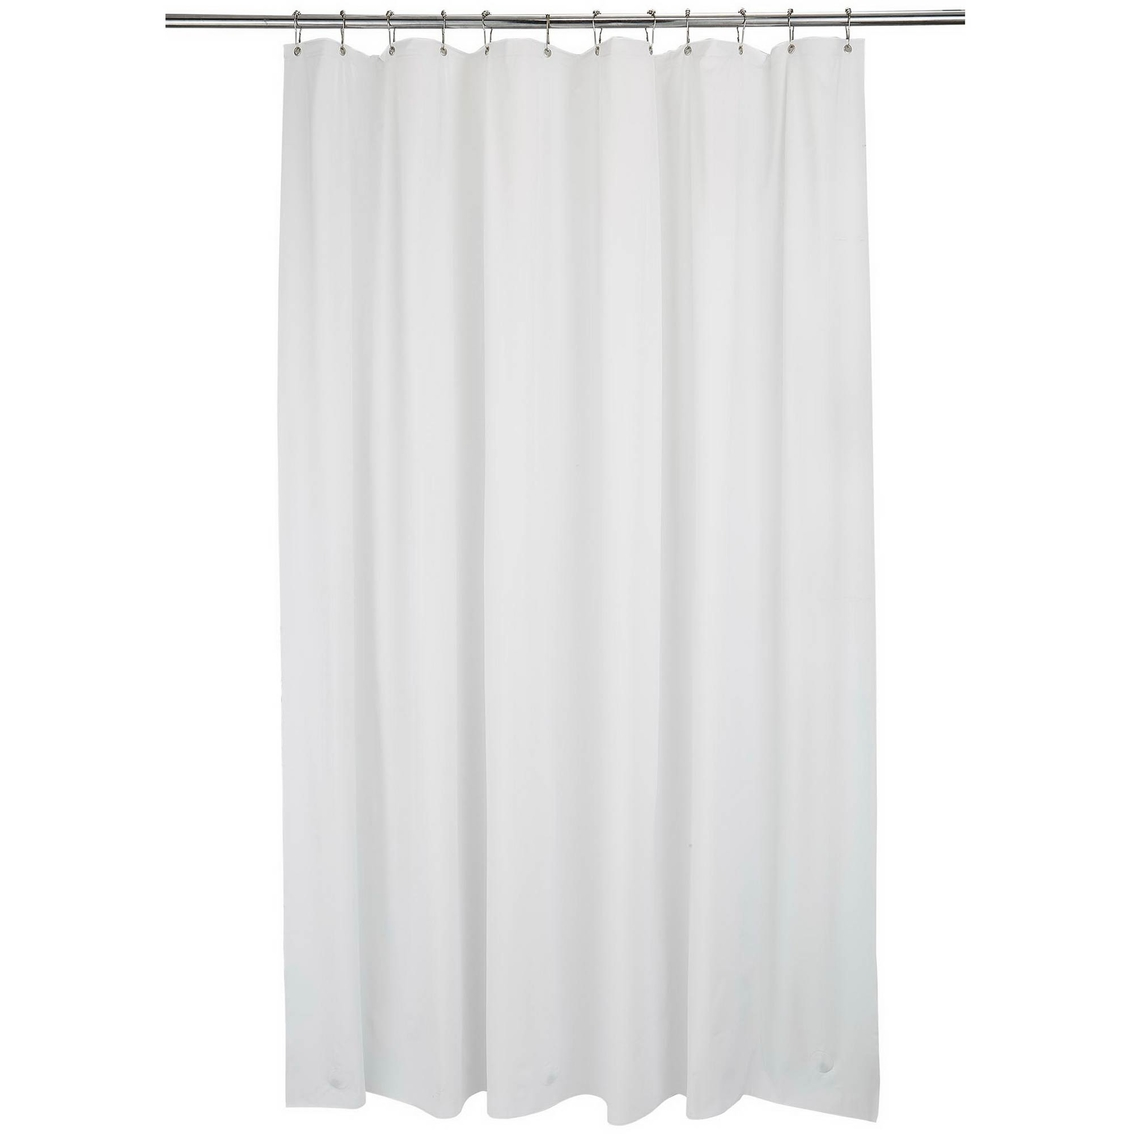 bath bliss extra long 72 x 84 in shower liner shower curtains hooks household shop the exchange